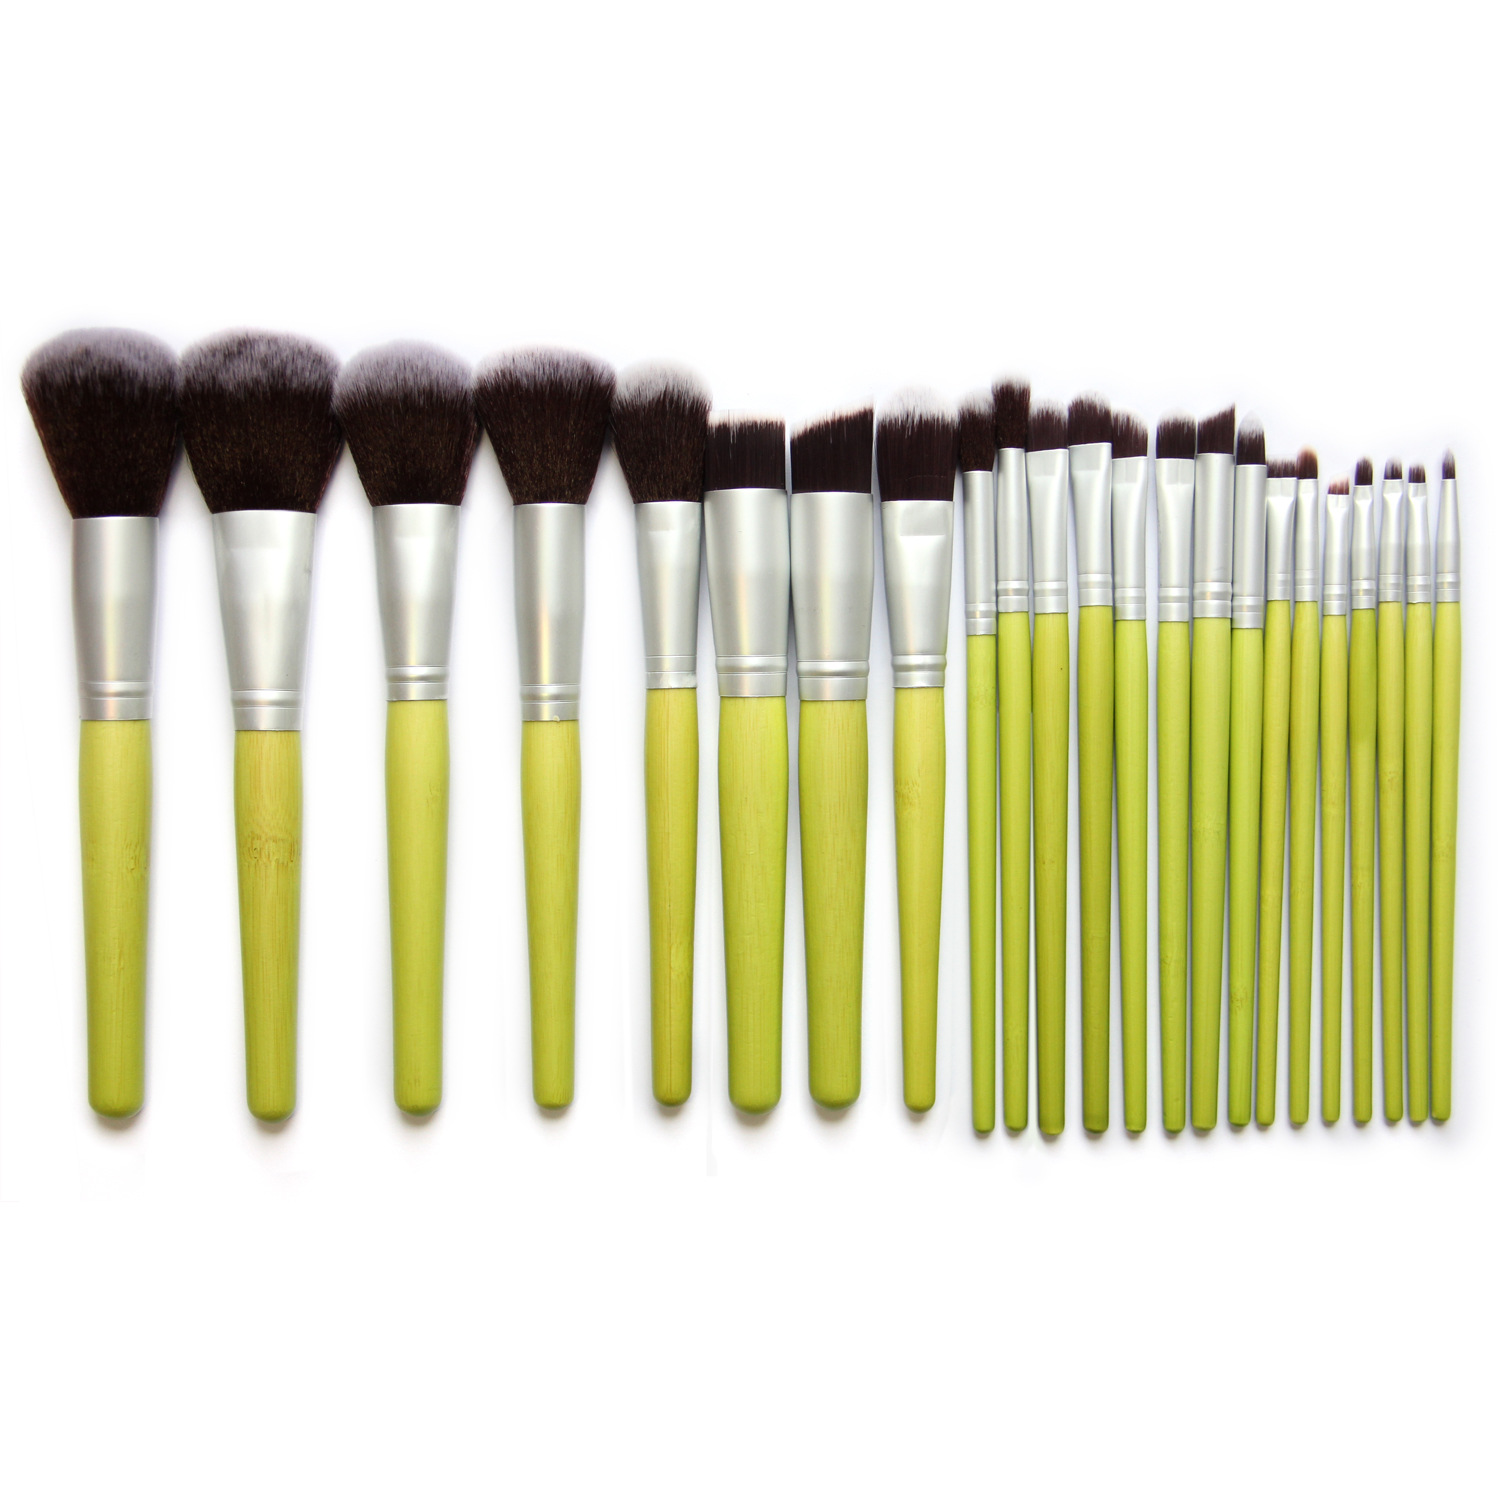 Hot 23Pcs/Set Pro Makeup Brushes For Powder Foundation Eyeshadow Brush Lip Pincel Maquiagem Free Shipping 4sets herringbone women leather messenger composite bags ladies designer handbag famous brands fashion bag for women bolsos cp03